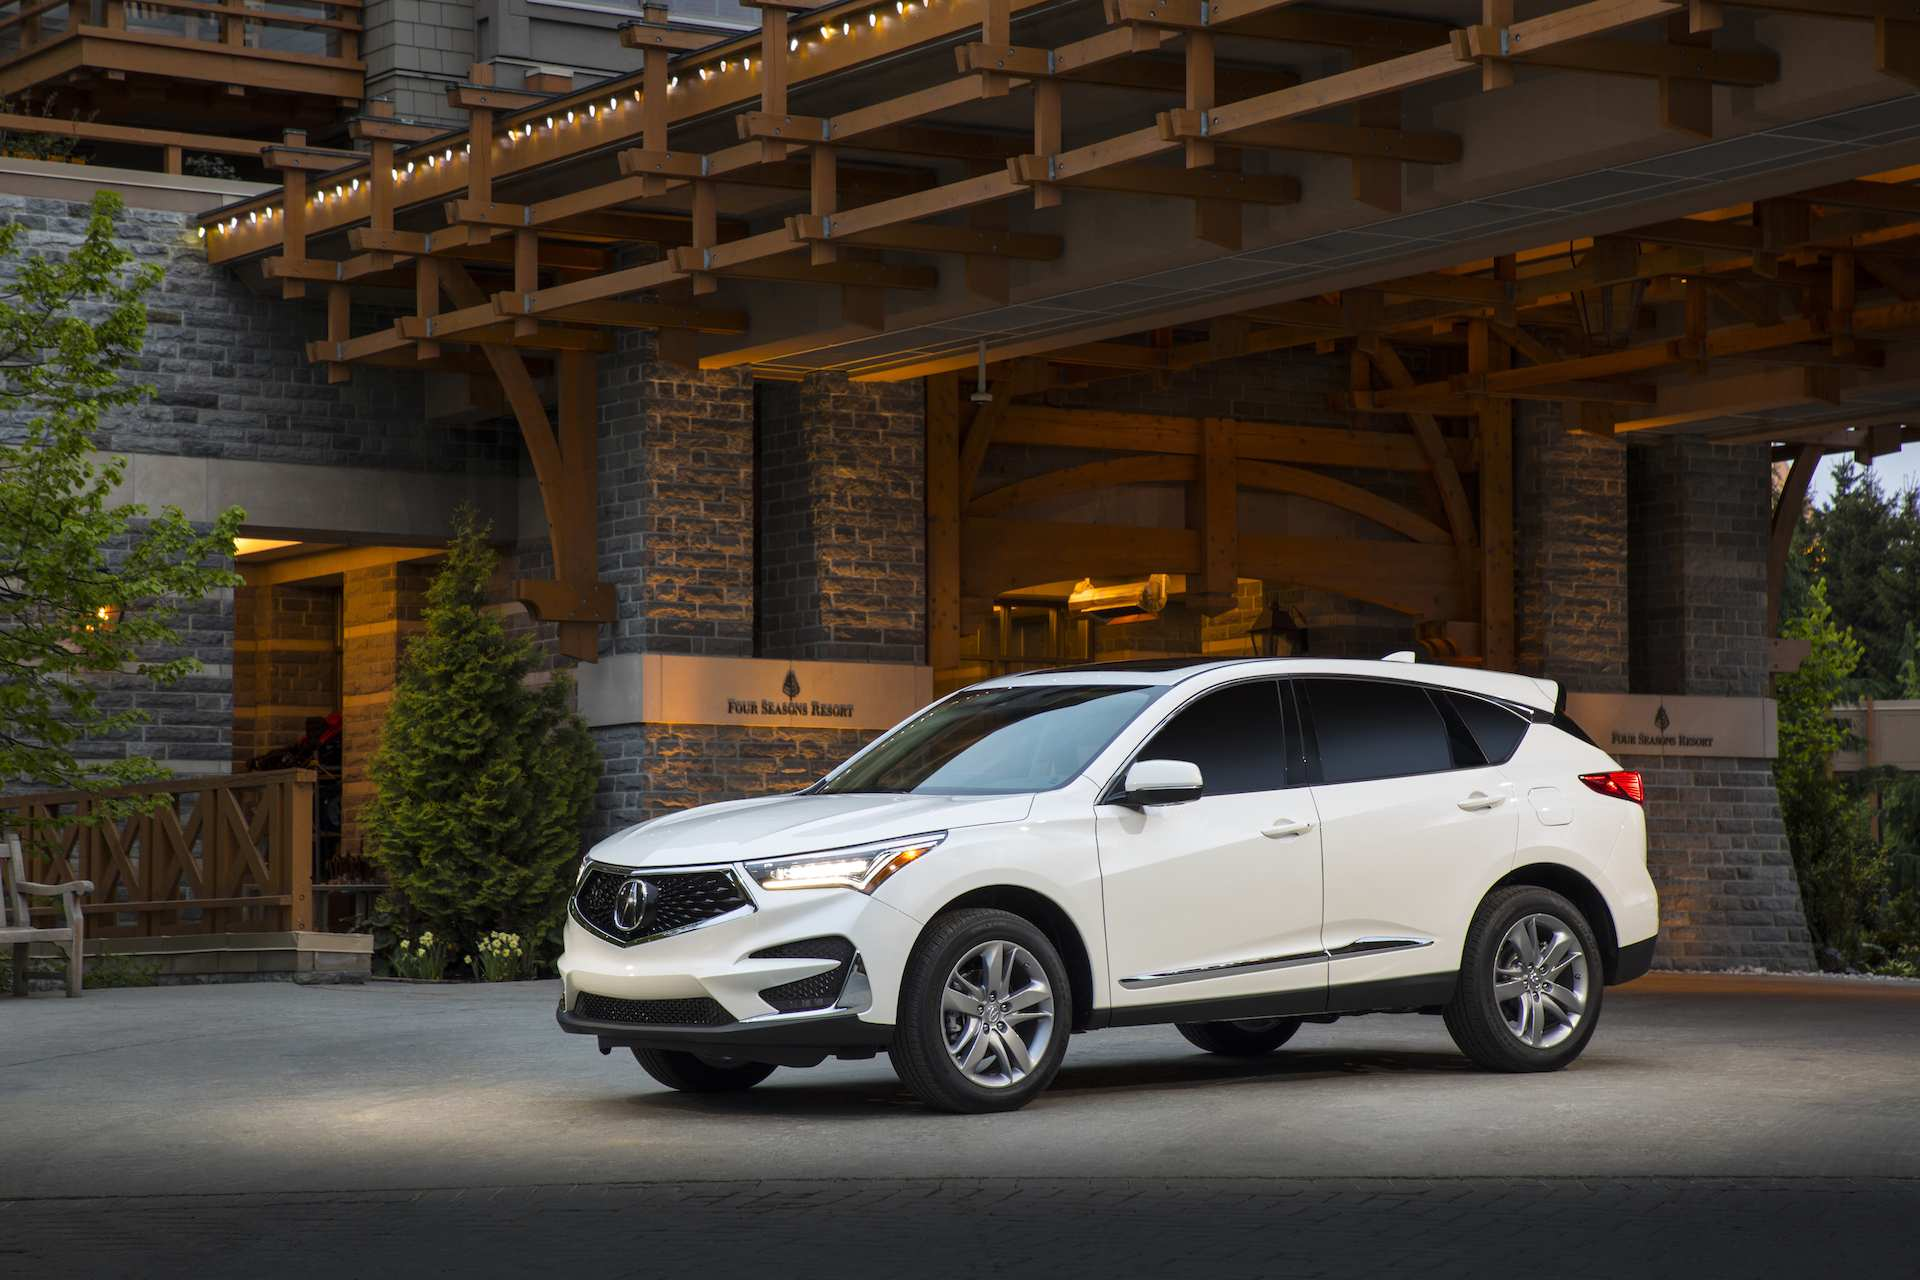 79 All New When Will Acura Rdx 2020 Be Available Spy Shoot for When Will Acura Rdx 2020 Be Available